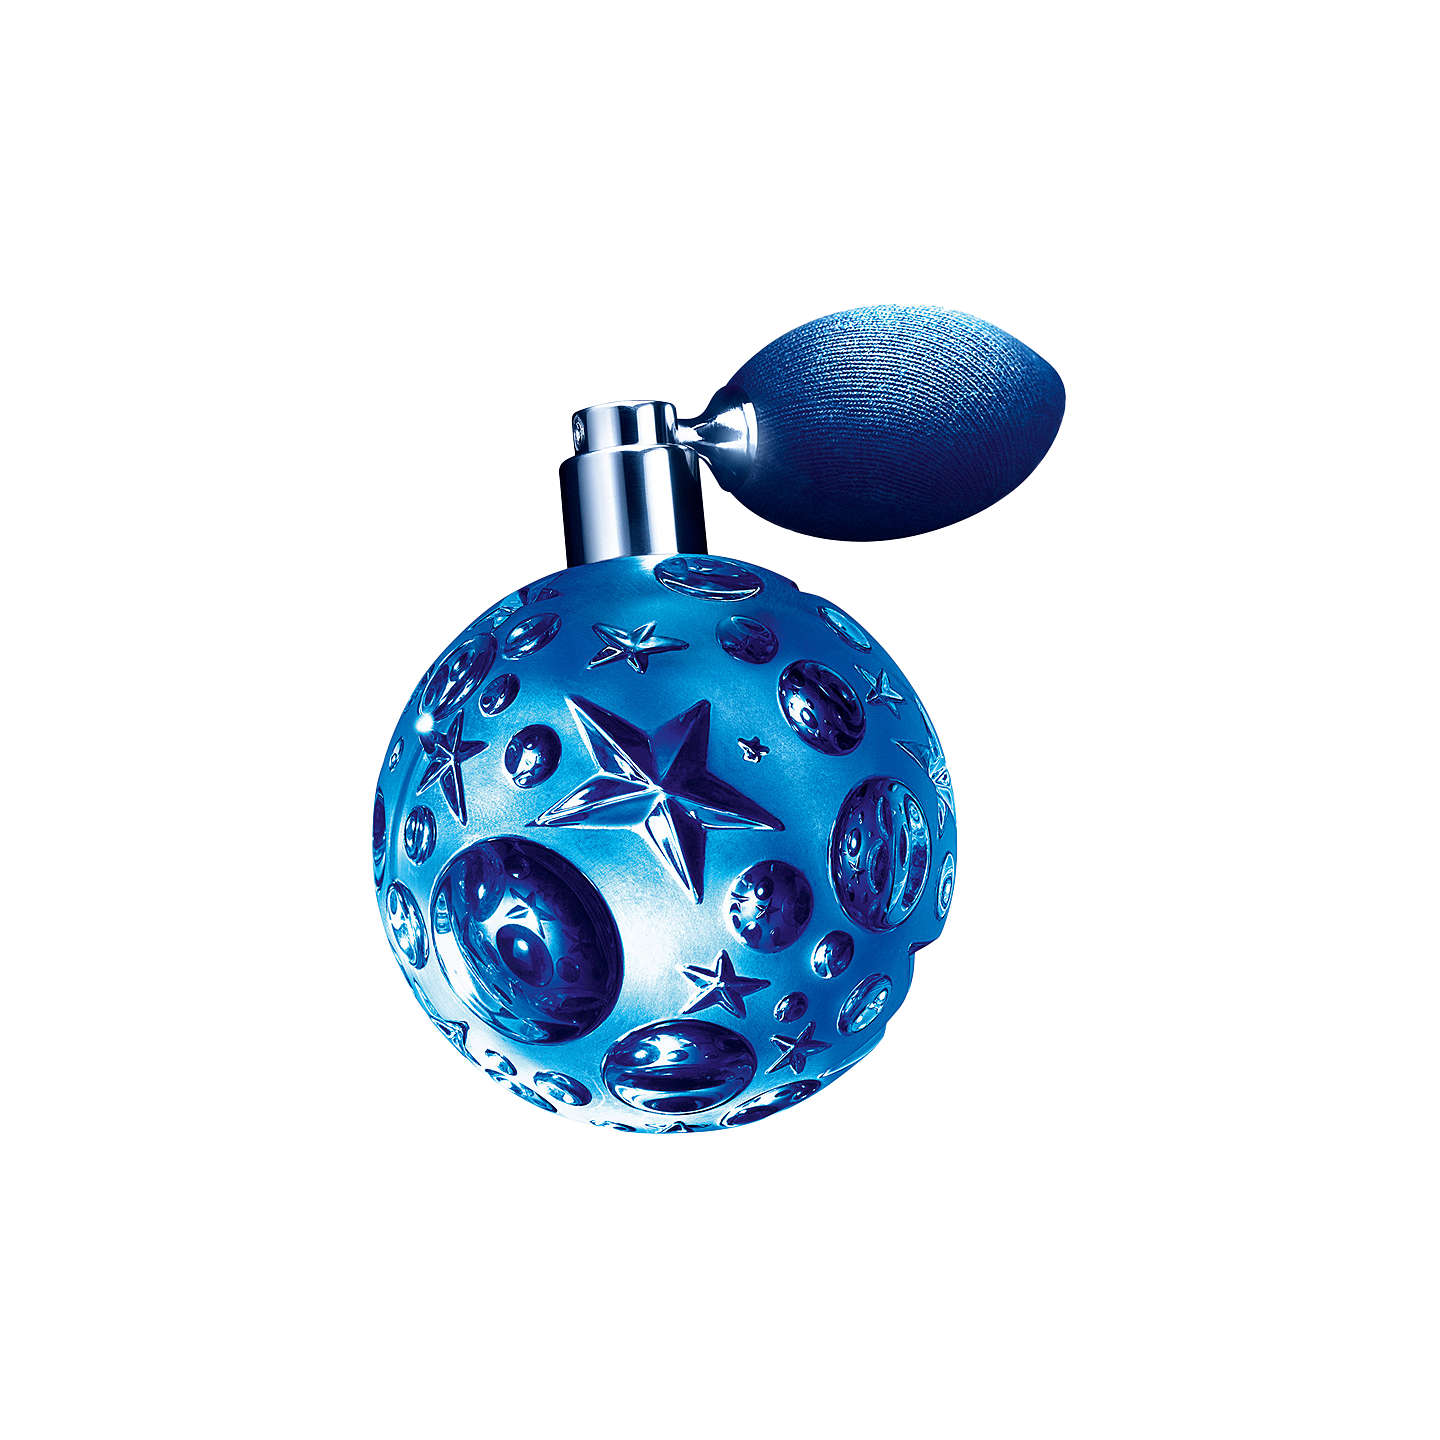 BuyMugler Angel Etoile des Reves Eau de Parfum, 100ml Online at johnlewis.com